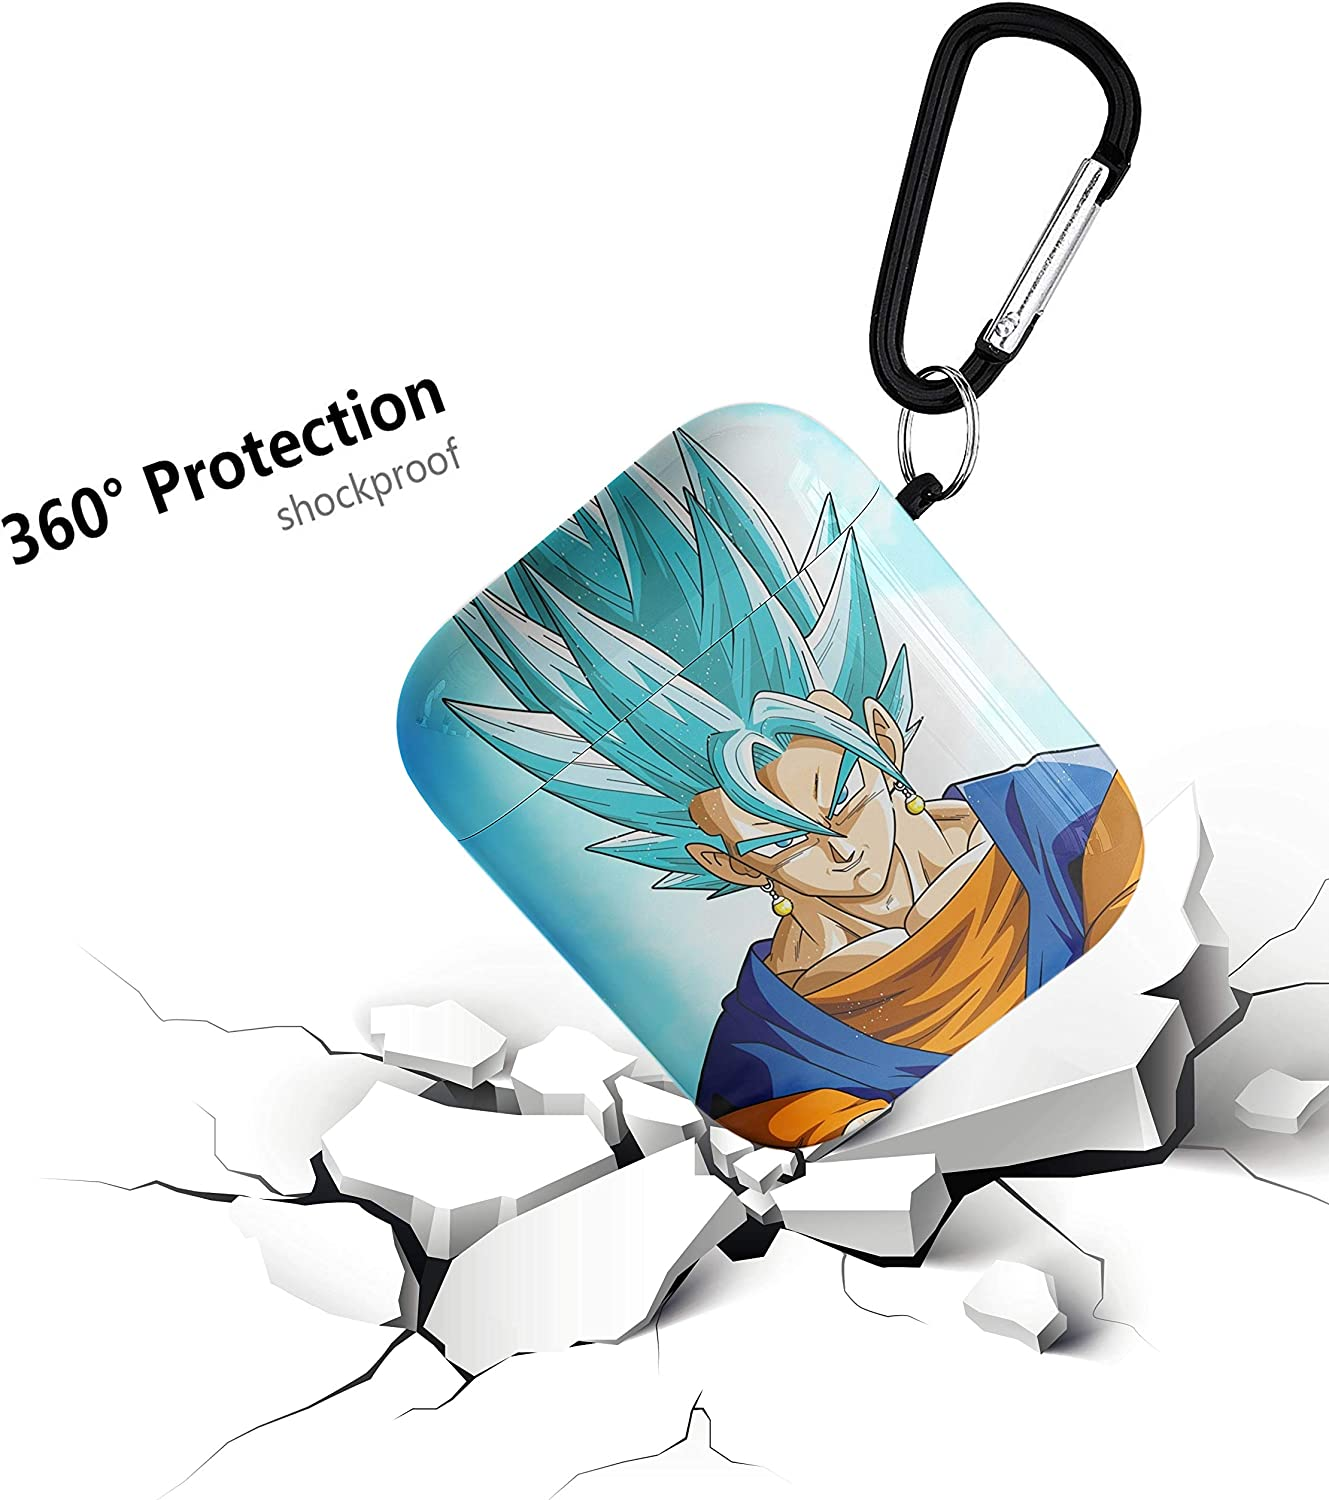 Dragon Ball Super Saiyan Aripod Personalise Custom AirPod Case Cover Compatiable with Apple AirPods 1st//2nd,Full Protective Durable Shockproof Drop Proof with Keychain Compatible